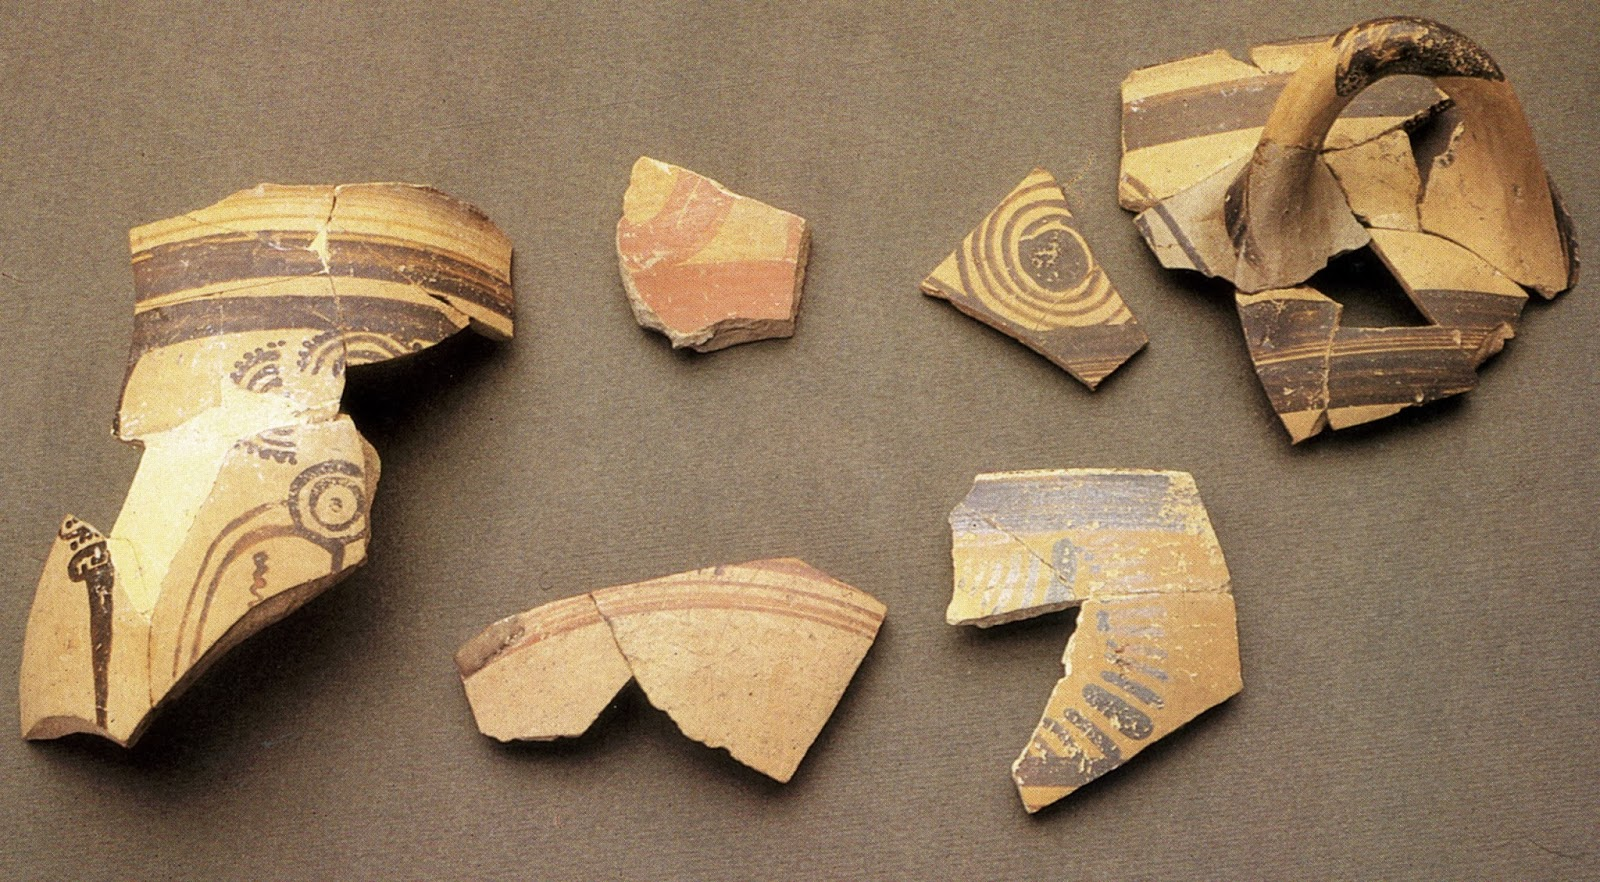 Quotidiano honebu di storia e archeologia la ceramica for La ceramica